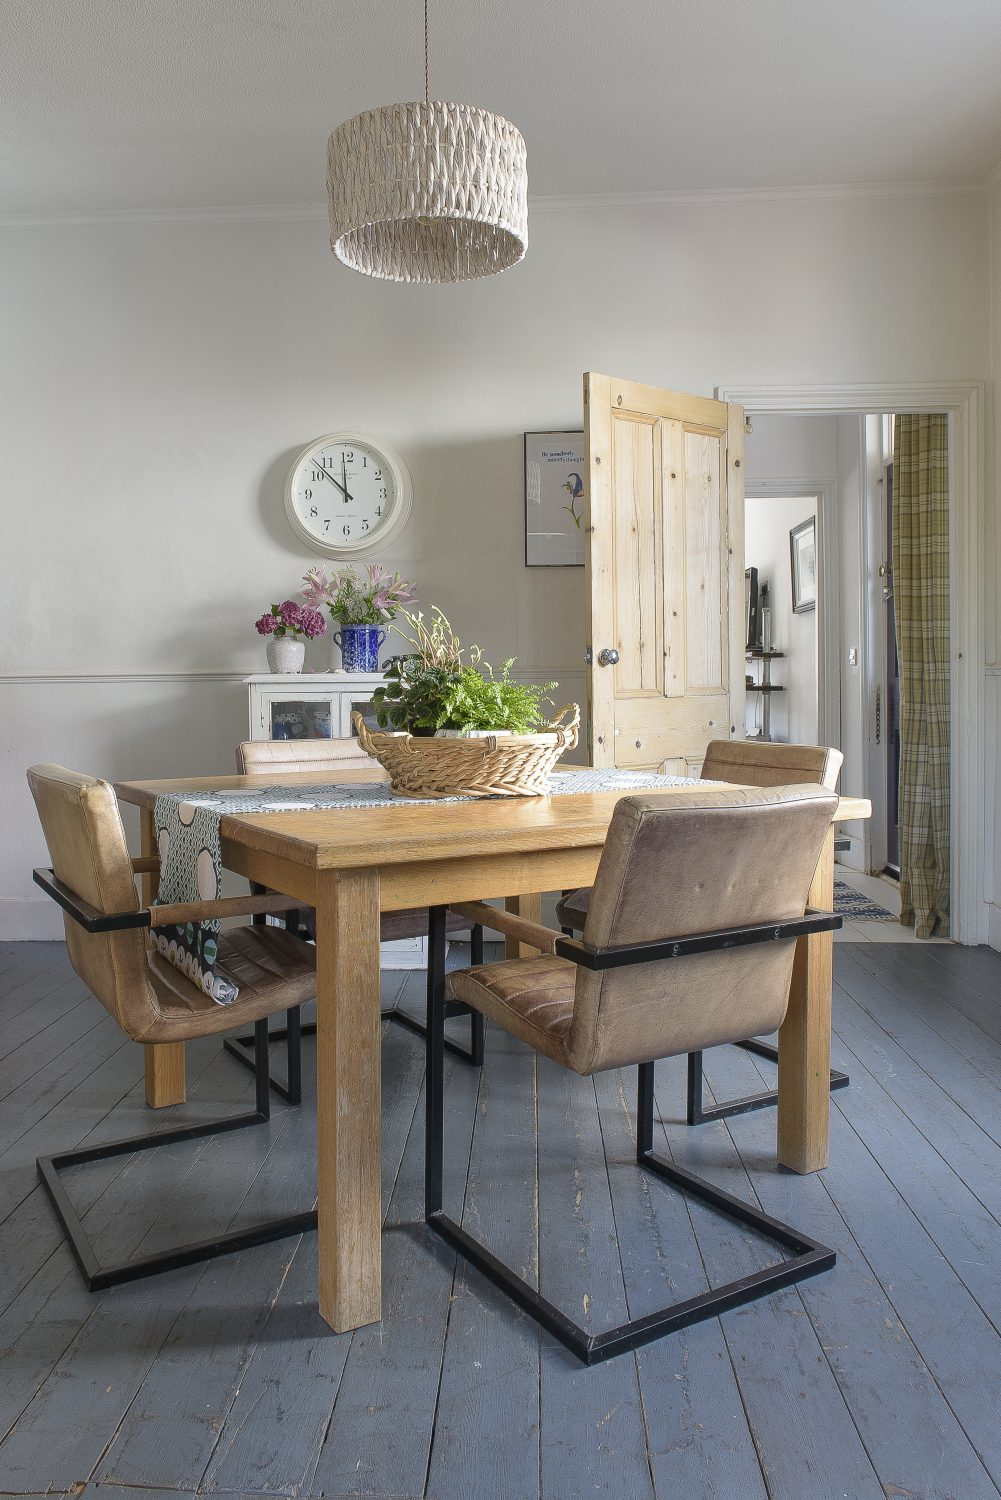 Setting the dining table at a diagonal angle makes it much easier to get around the room and adds dynamism to the space